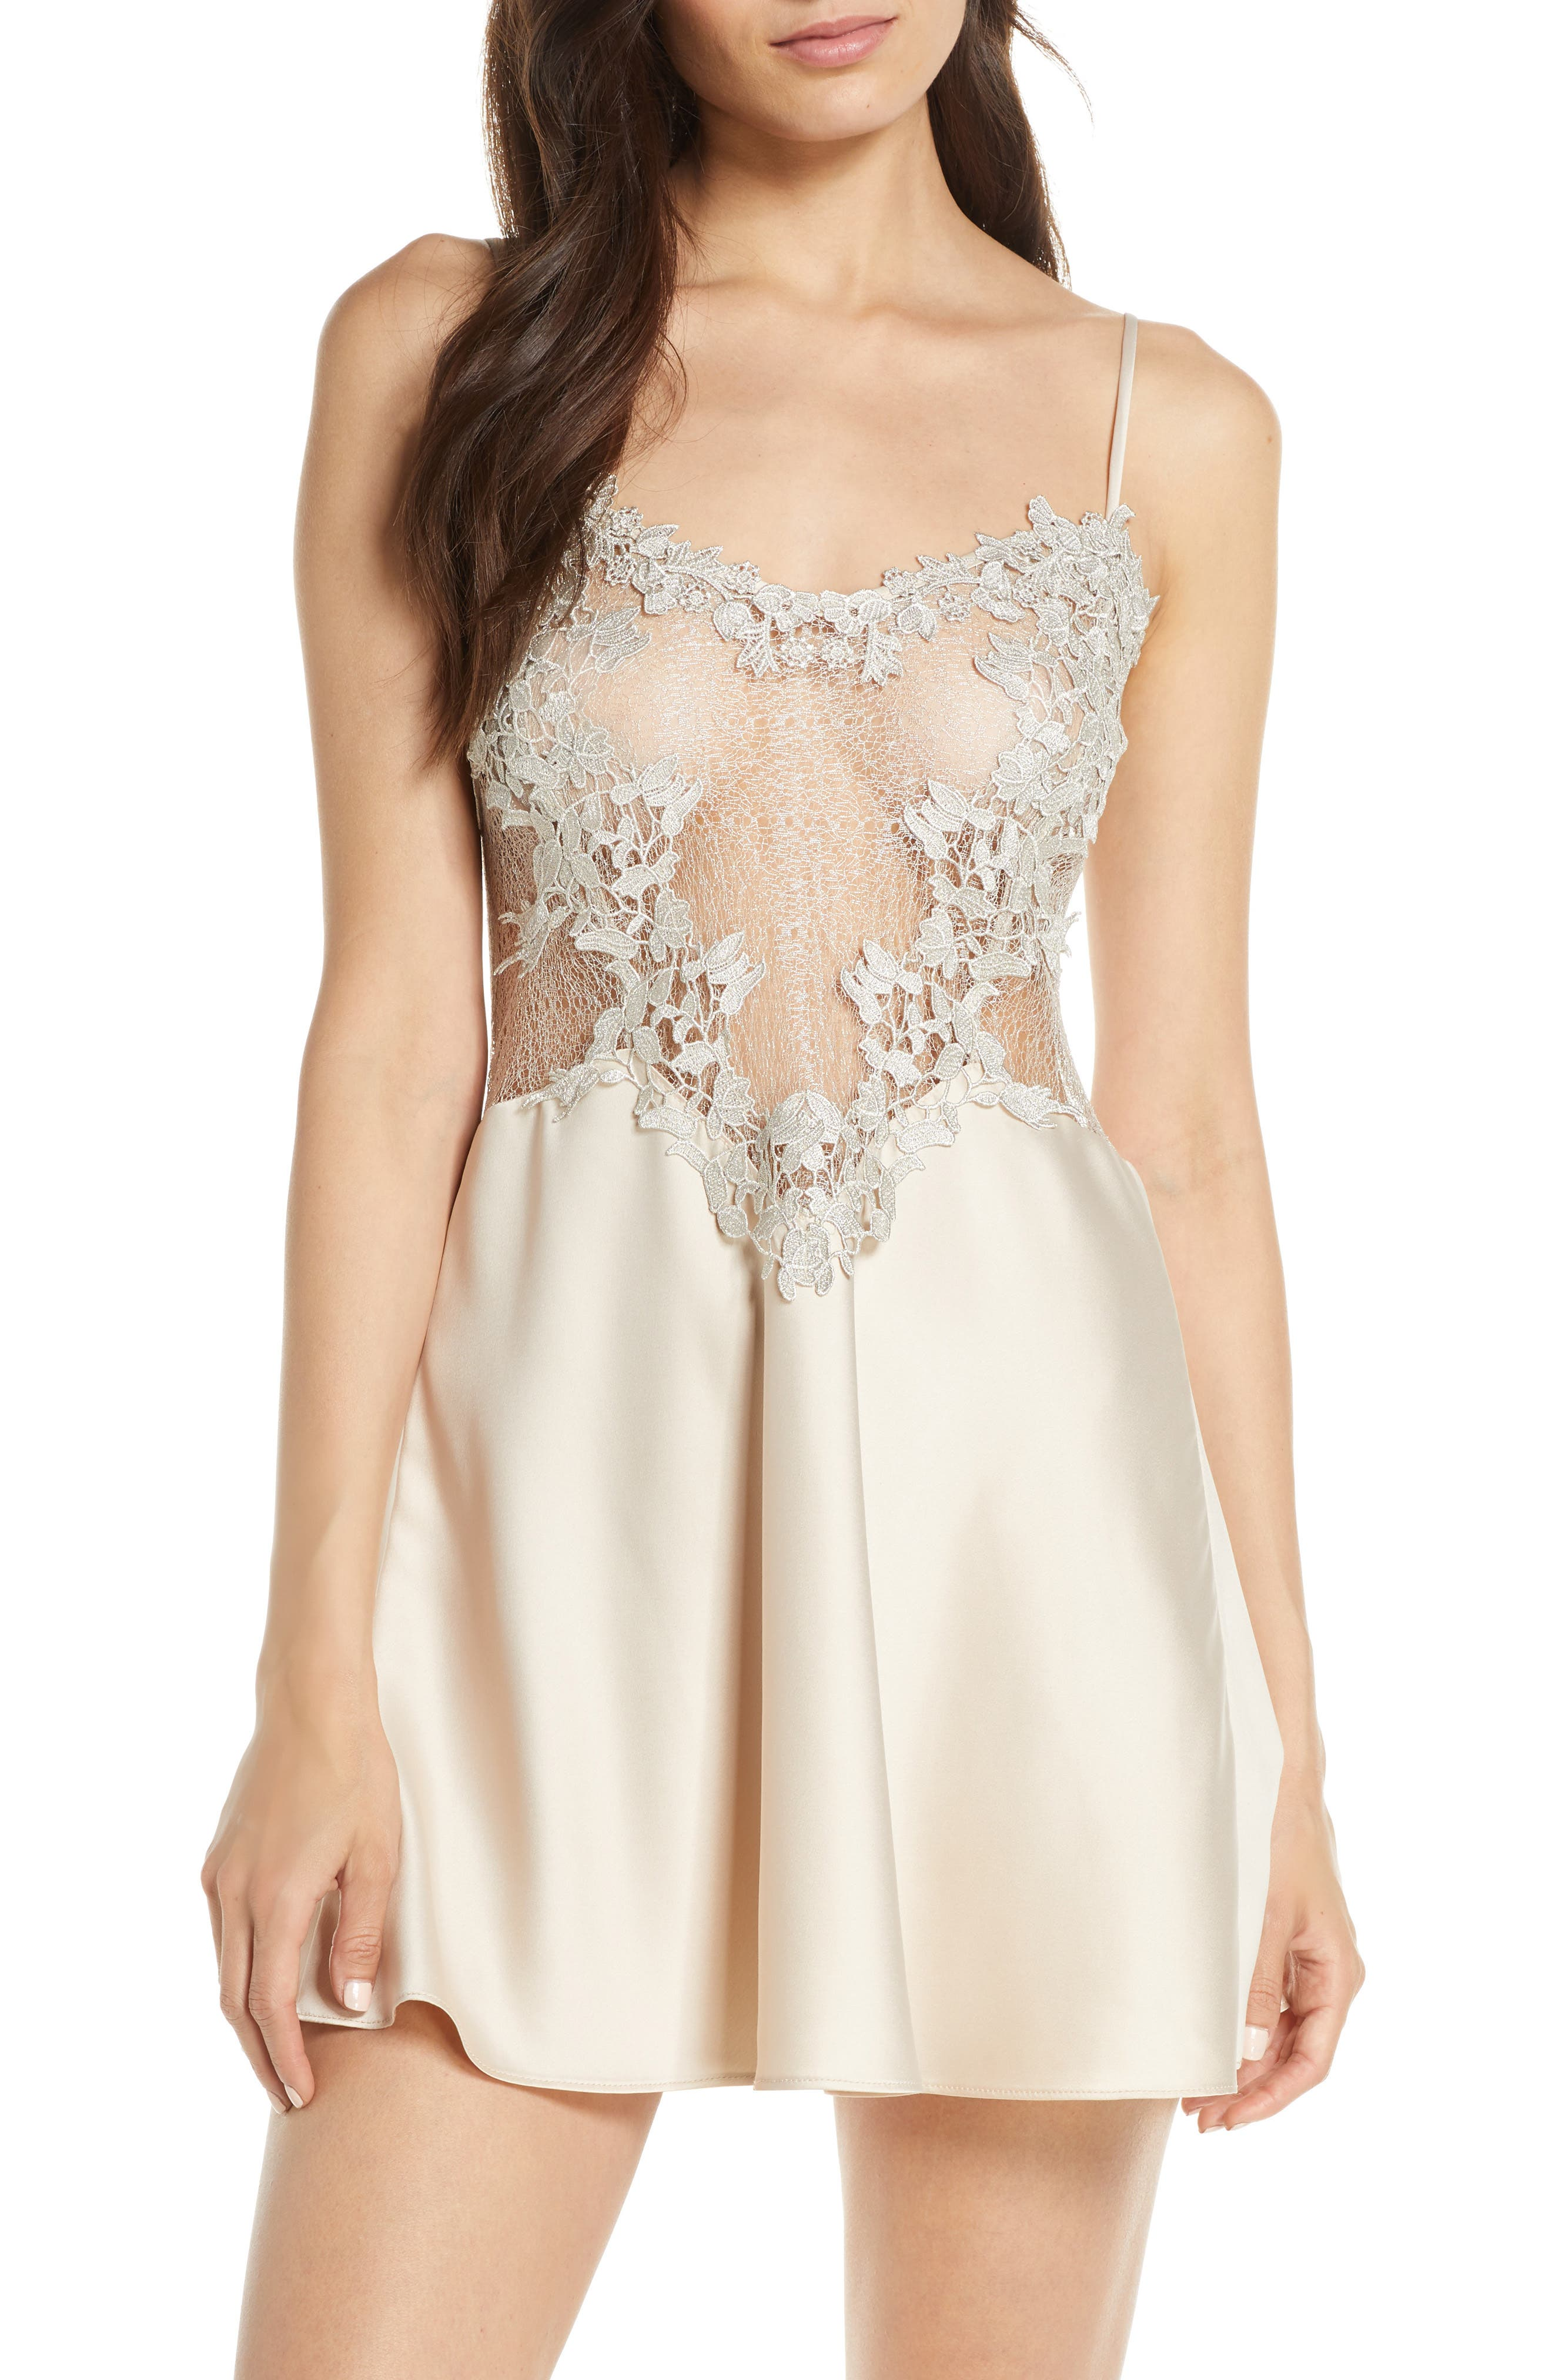 FLORA NIKROOZ, Showstopper Chemise, Main thumbnail 1, color, CHAMPAGNE